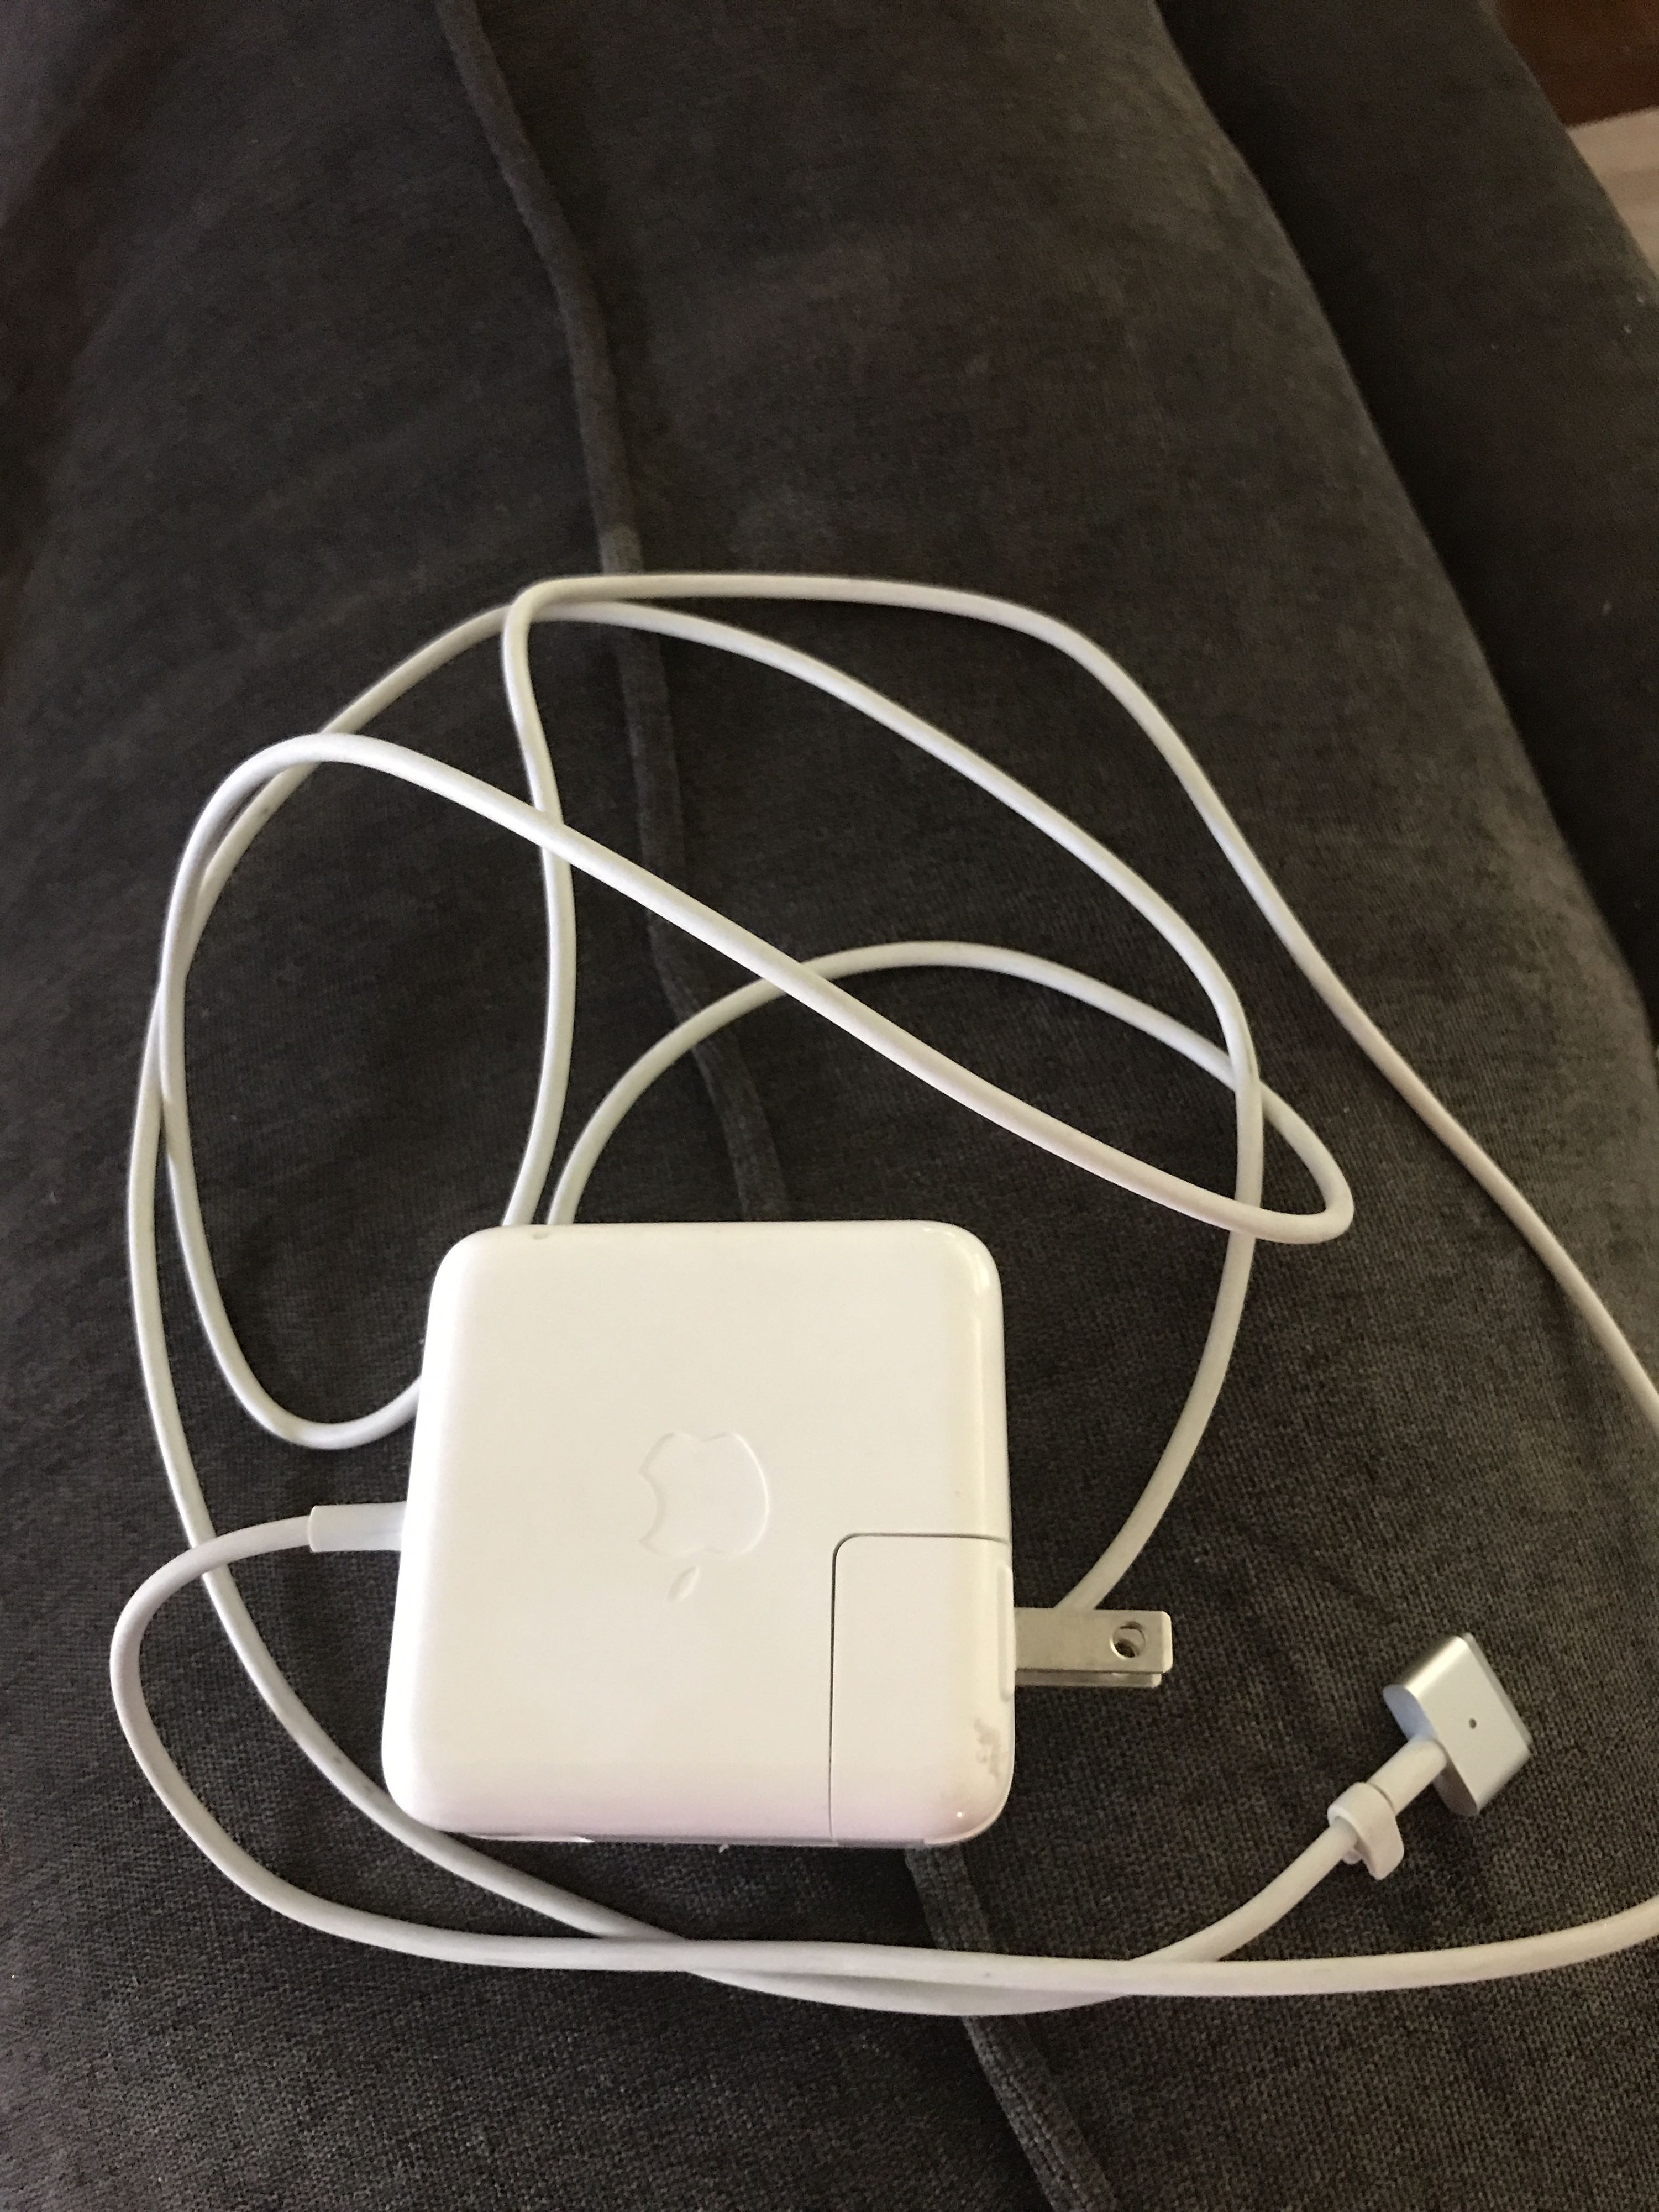 Charger for MacBook.